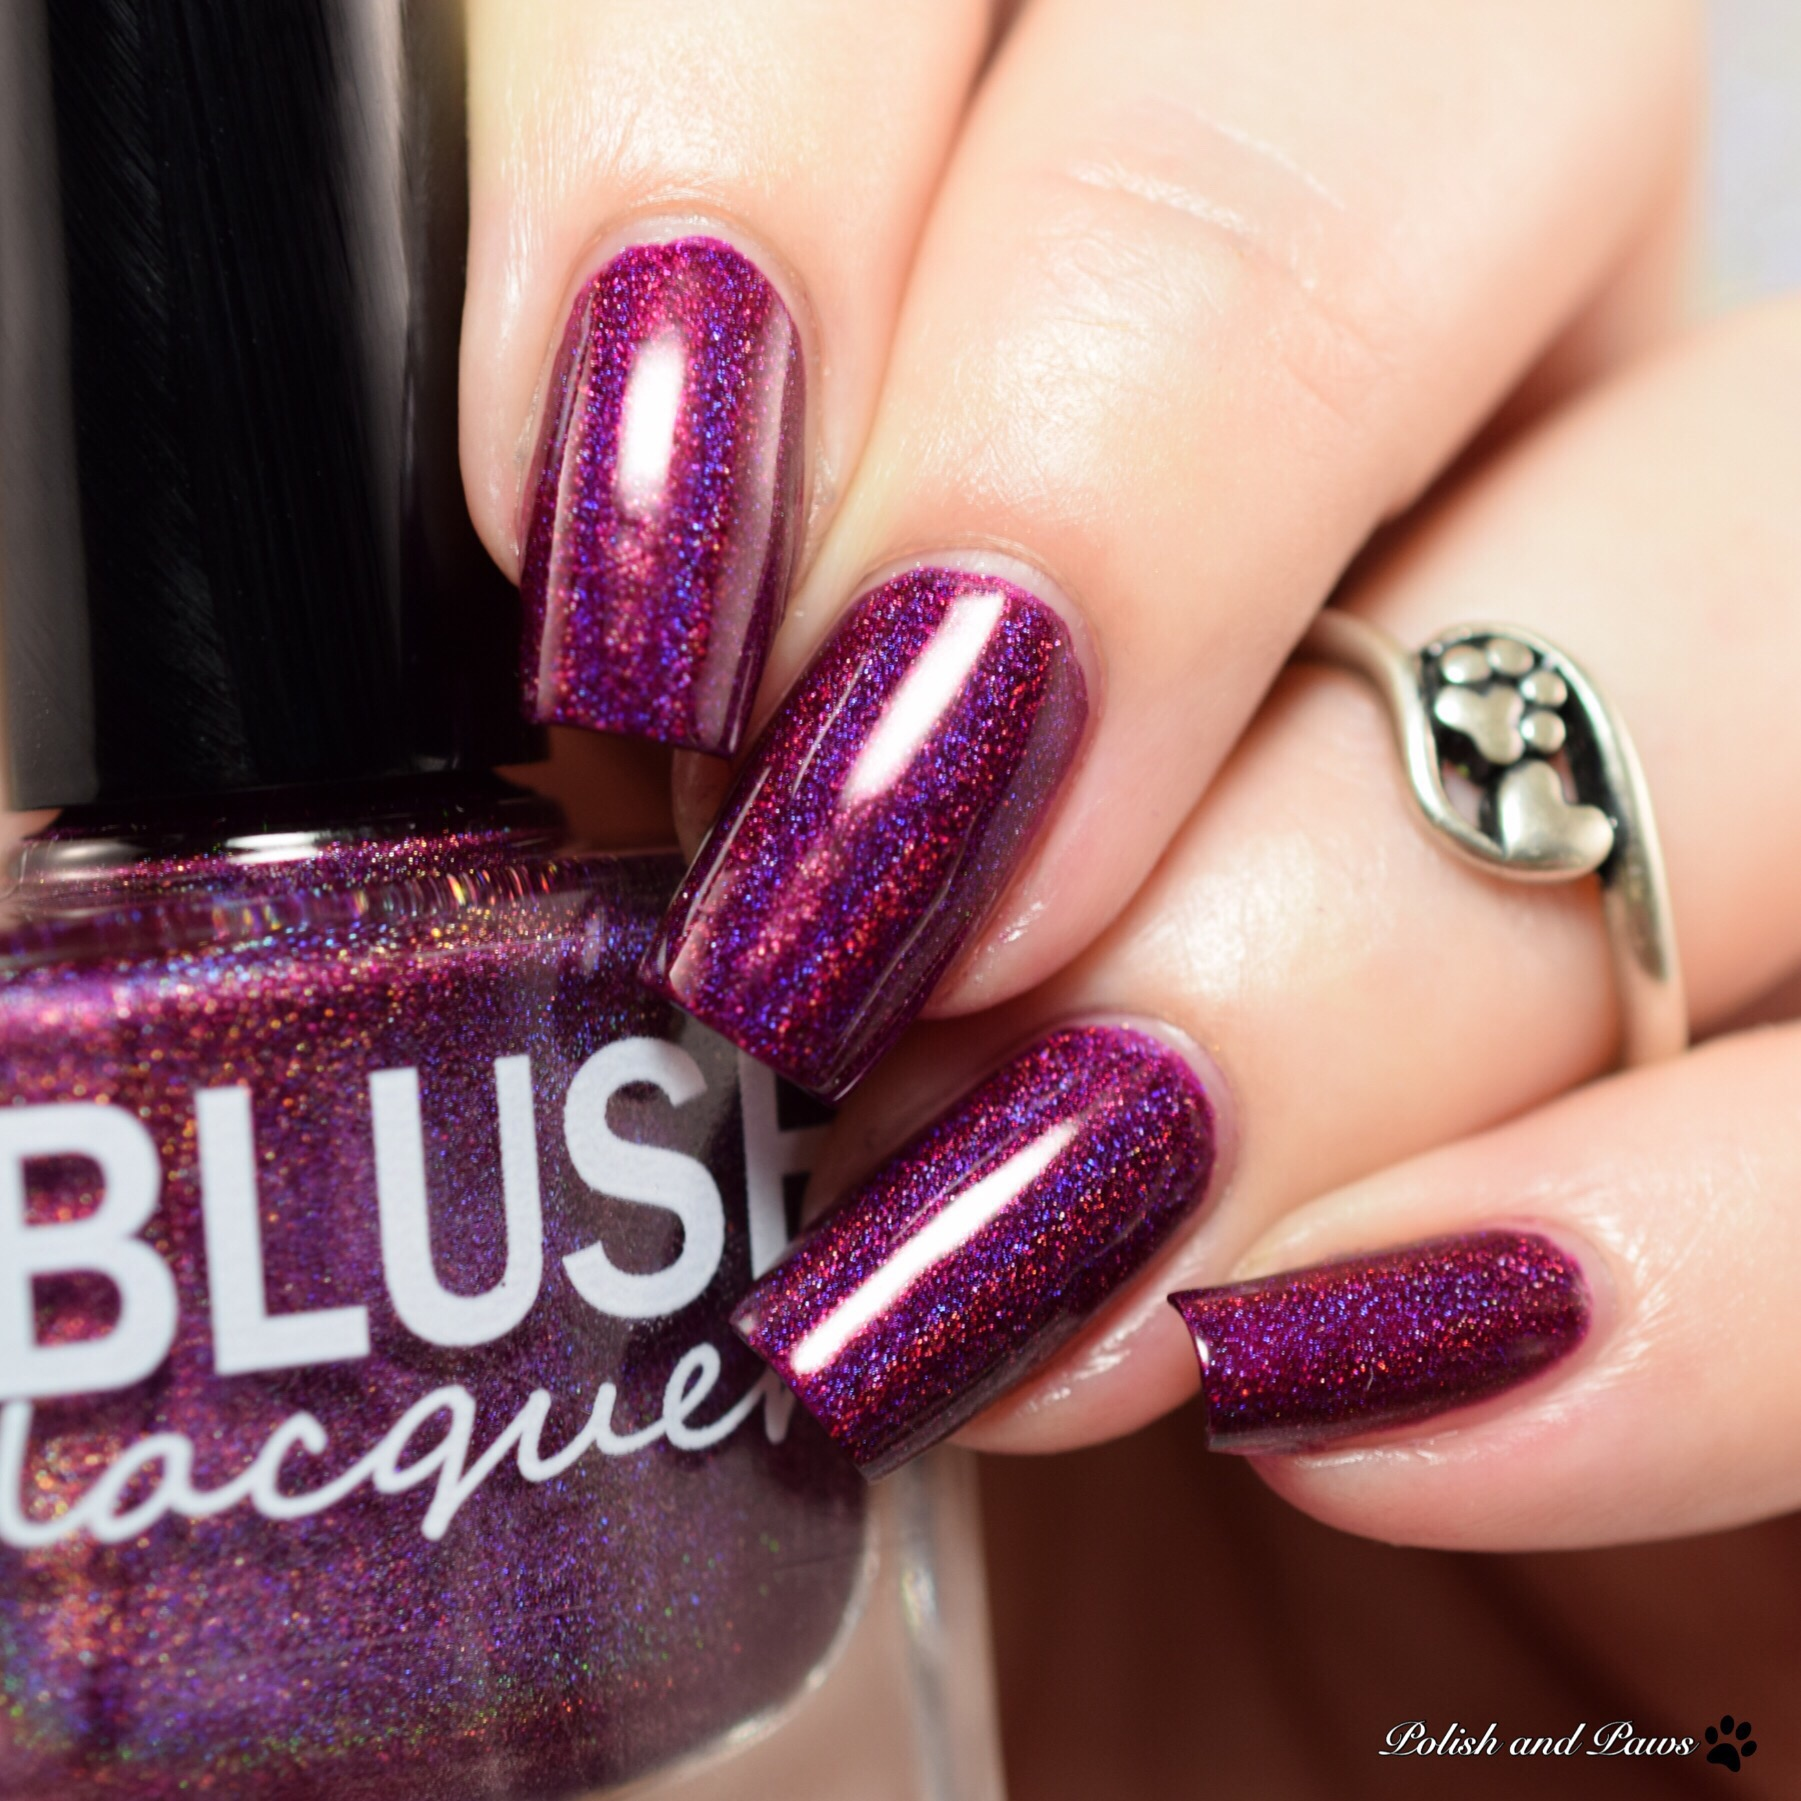 Blush Lacquers Sugar Plum Fairy